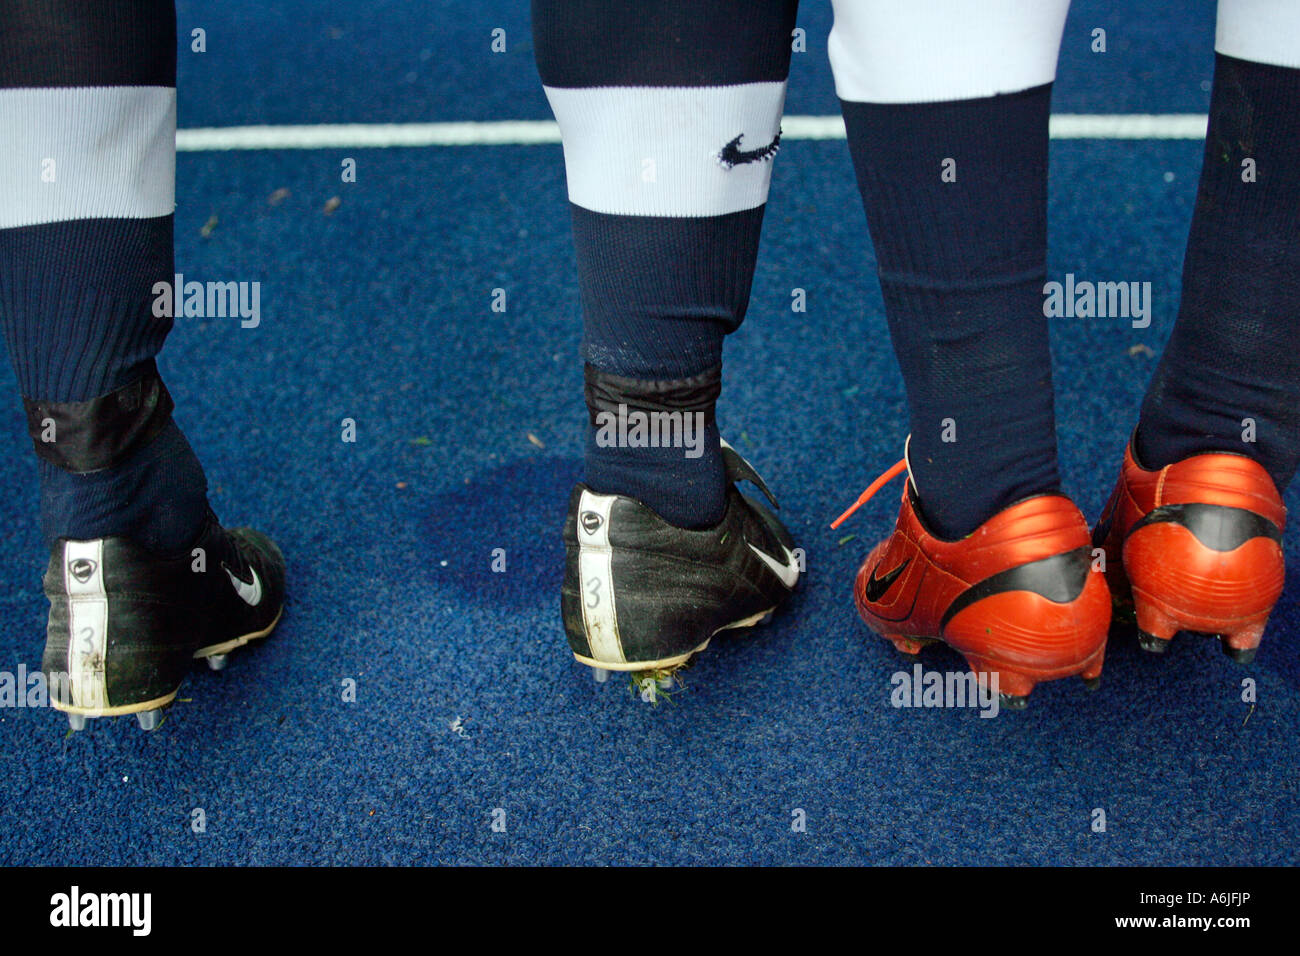 Legs of football players - Stock Image